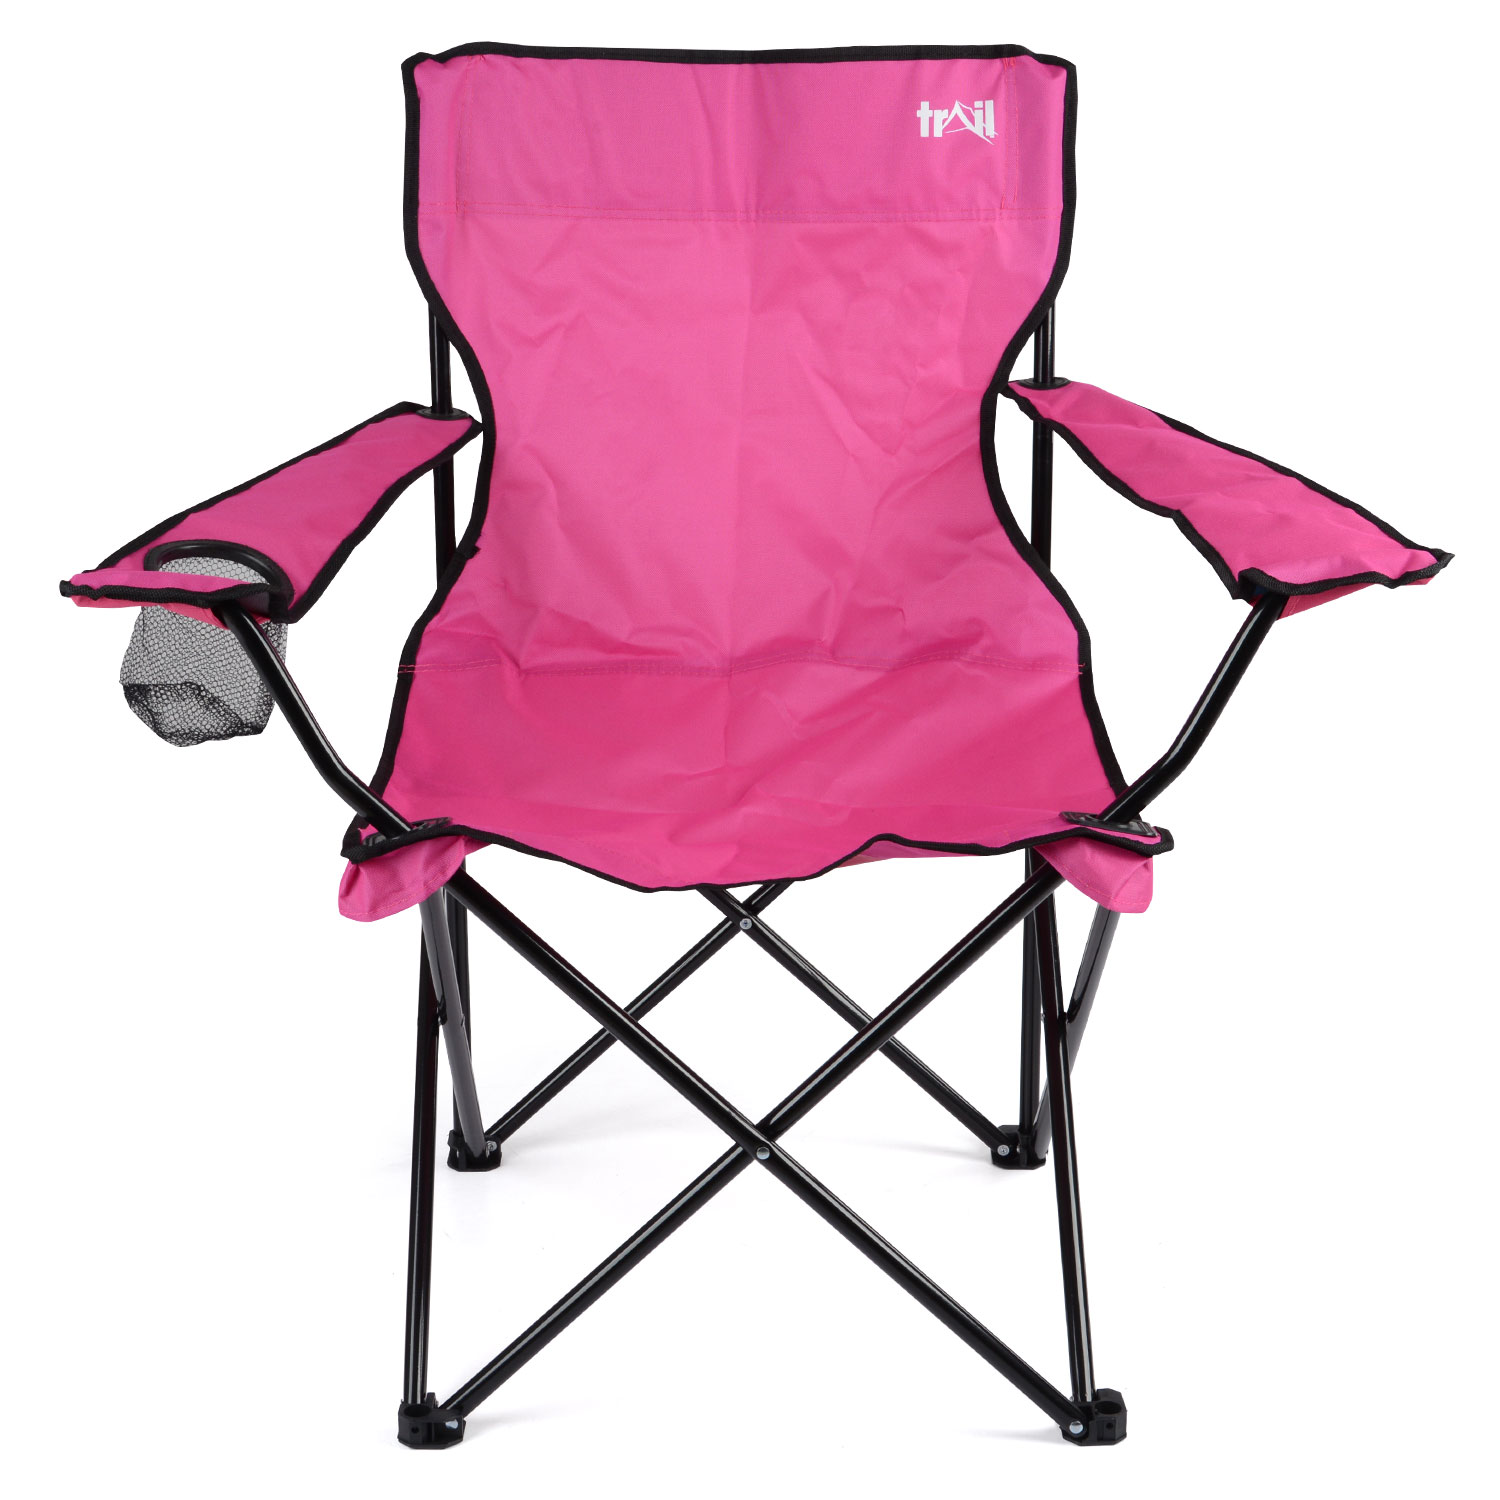 camp folding chairs wide office chair foldable camping beach fold up festival